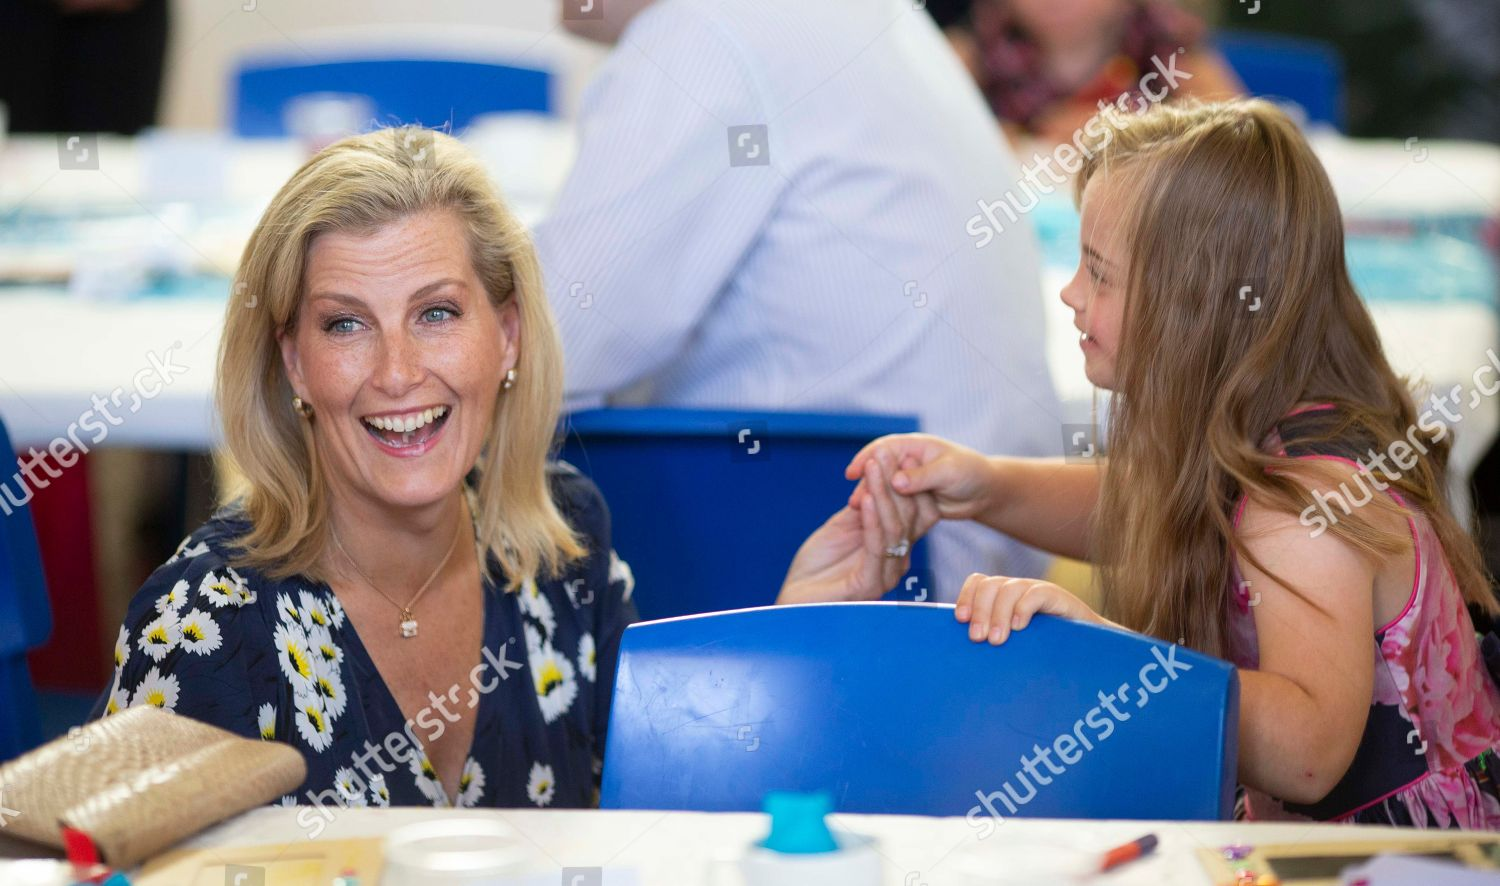 sophie-countess-of-wessex-visits-the-me2-club-tea-party-woodley-uk-shutterstock-editorial-9885213q.jpg